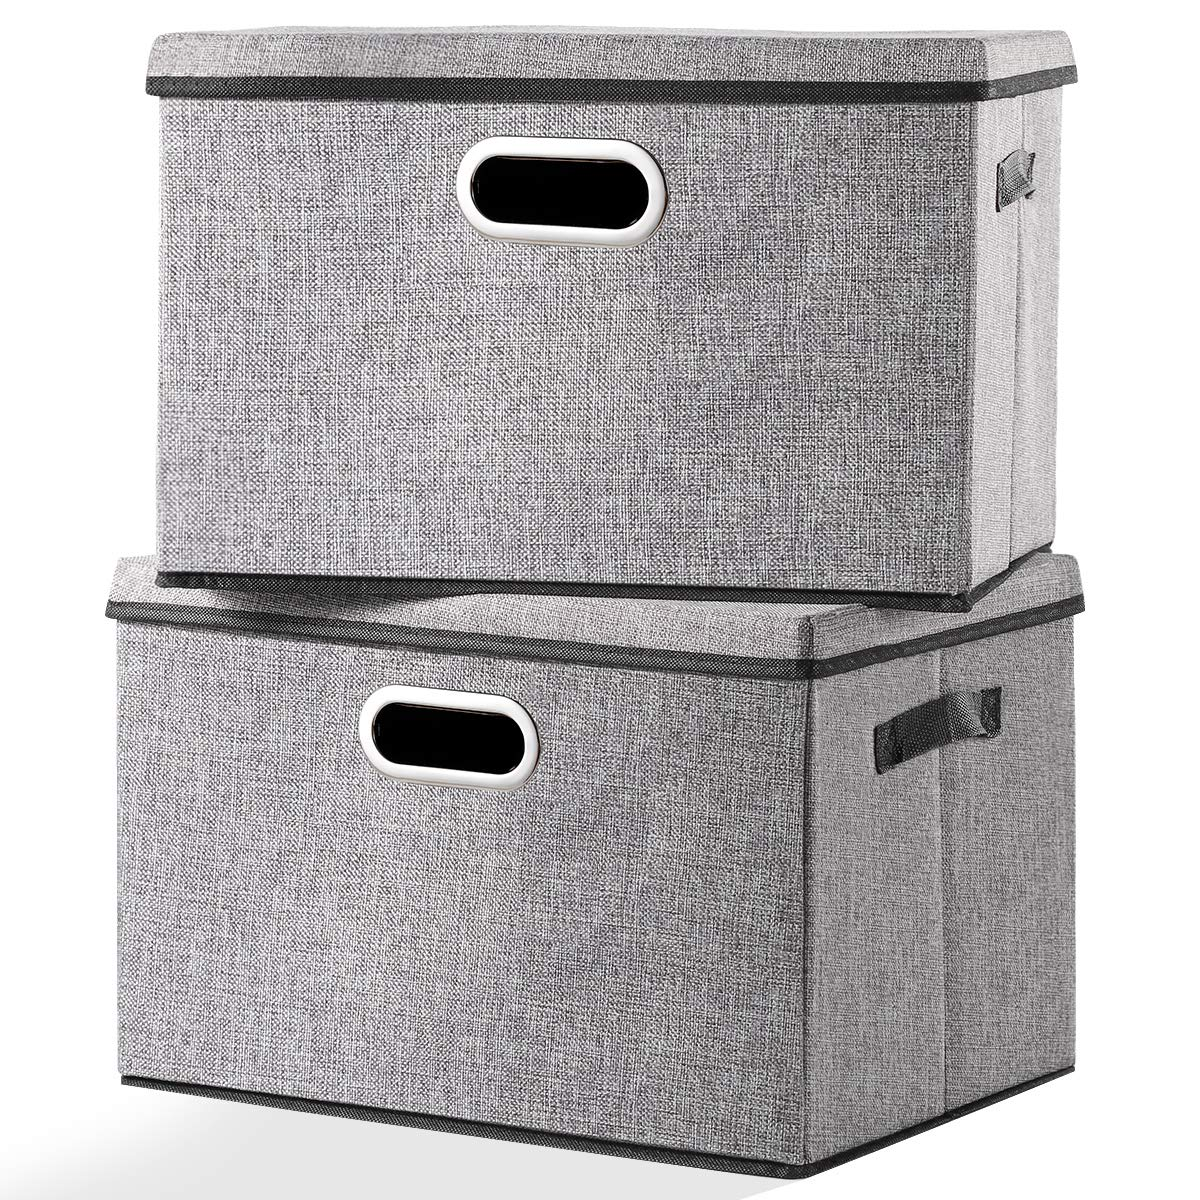 Seckon Large Foldable Storage Bin with Lid [2-Pack] Linen Fabric Decorative Storage Box Organizer Containers Basket Cube with Handles Divider for Bedroom Closet Office Living Room by Seckon